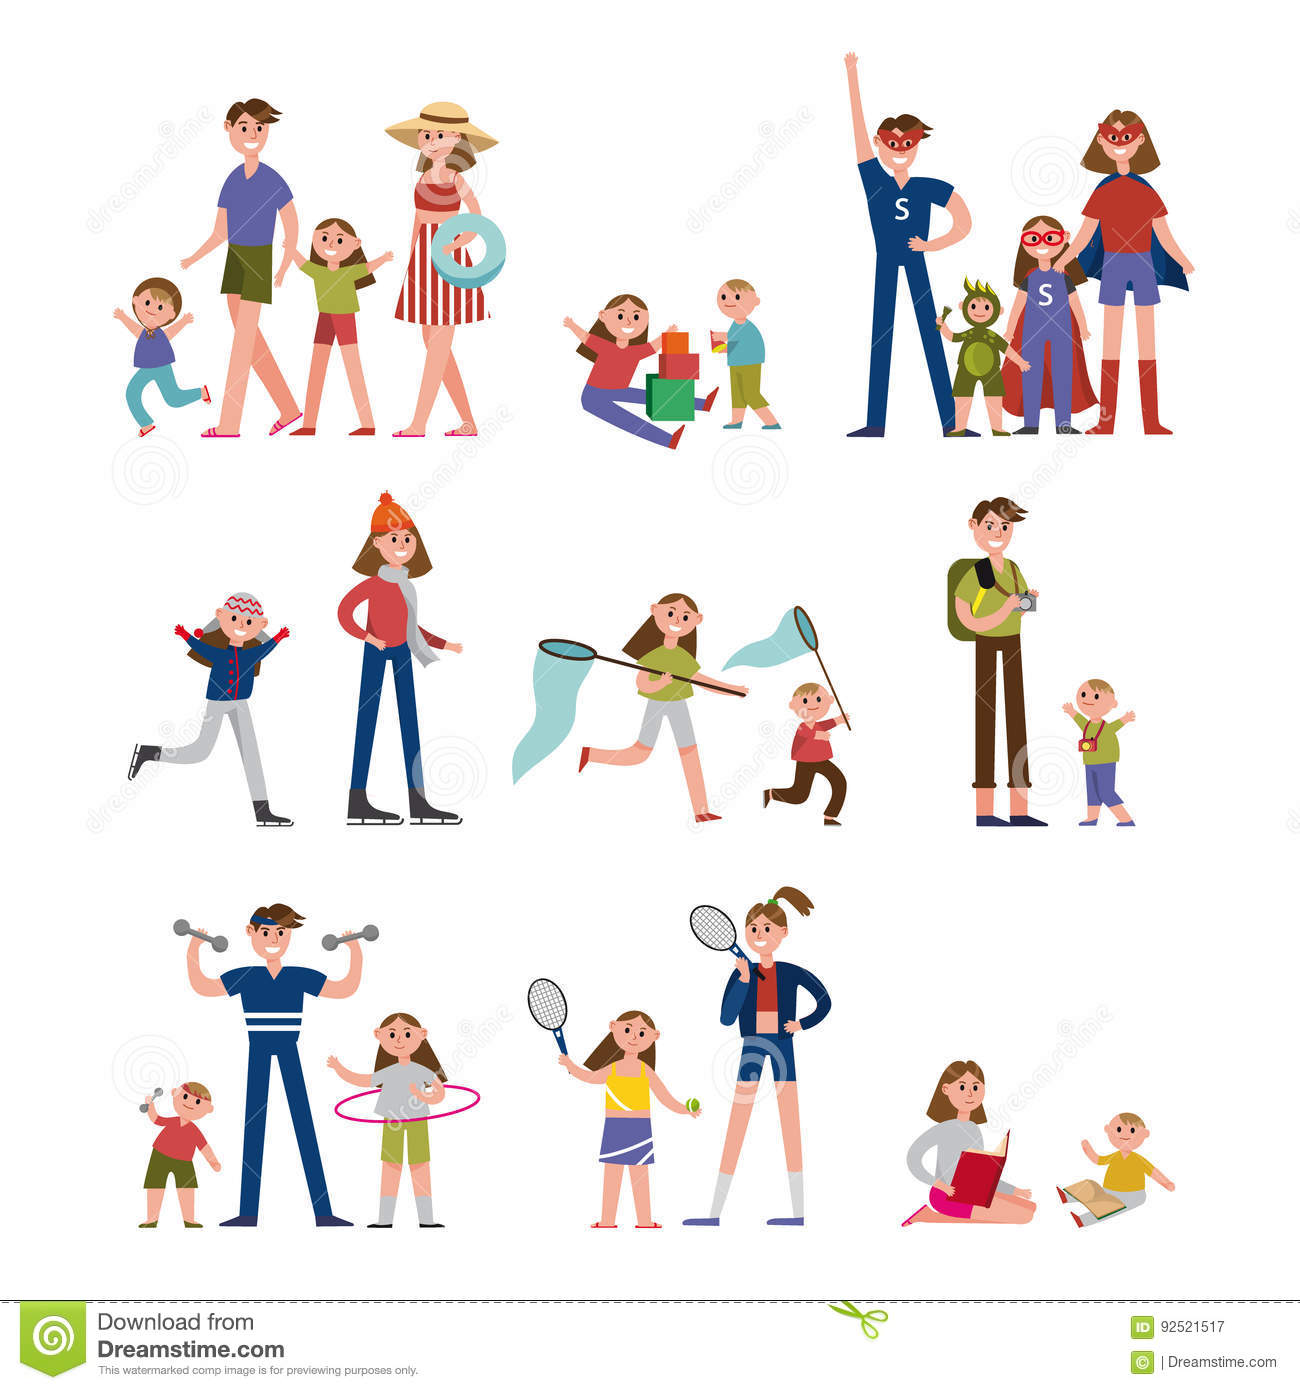 Leisure Cartoons Illustrations Amp Vector Stock Images